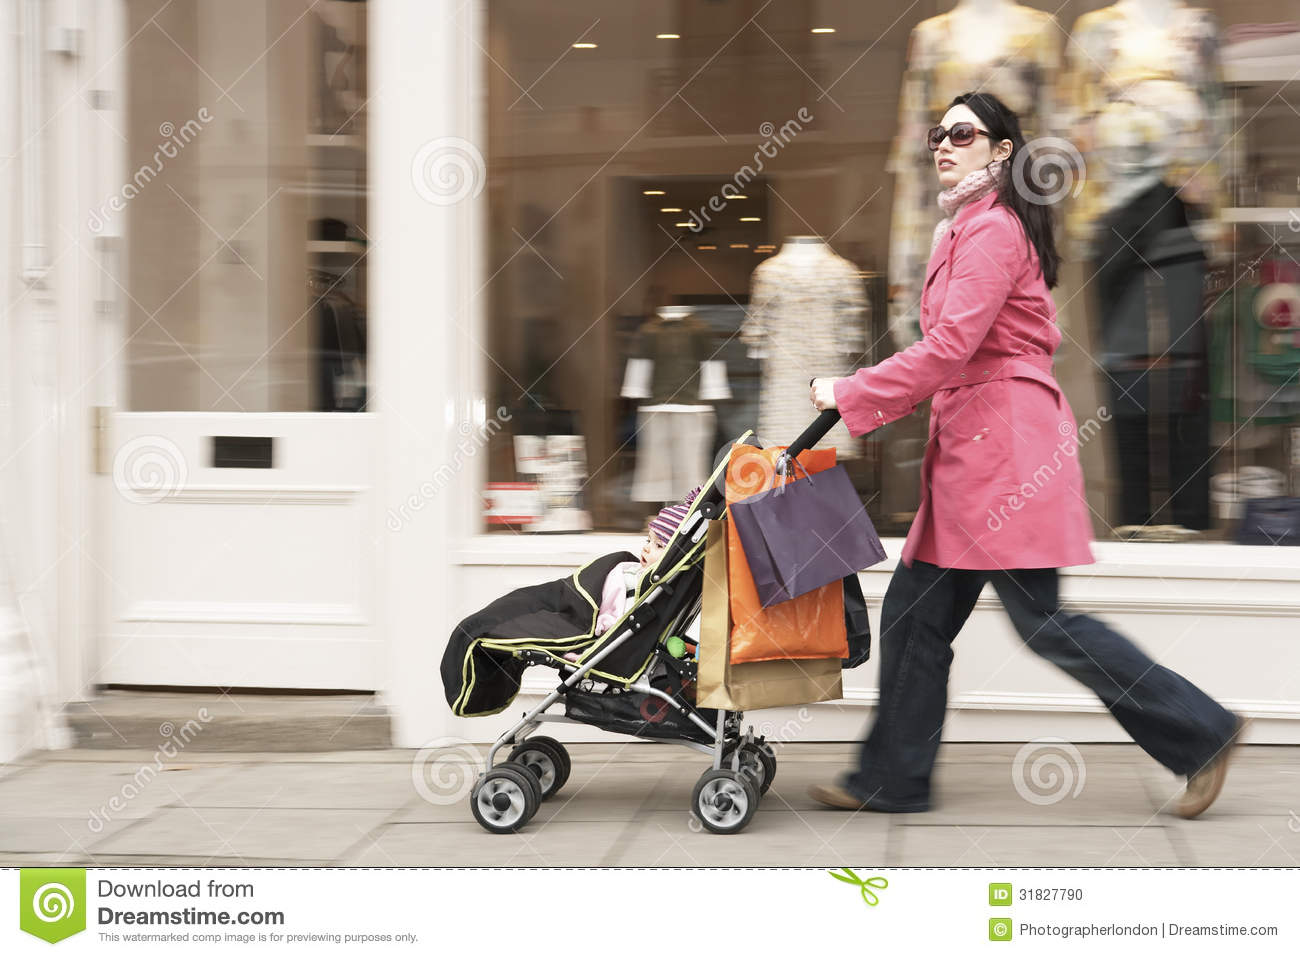 Mother Pushing Stroller By Clothes Shop Stock Photo - Image: 31827790